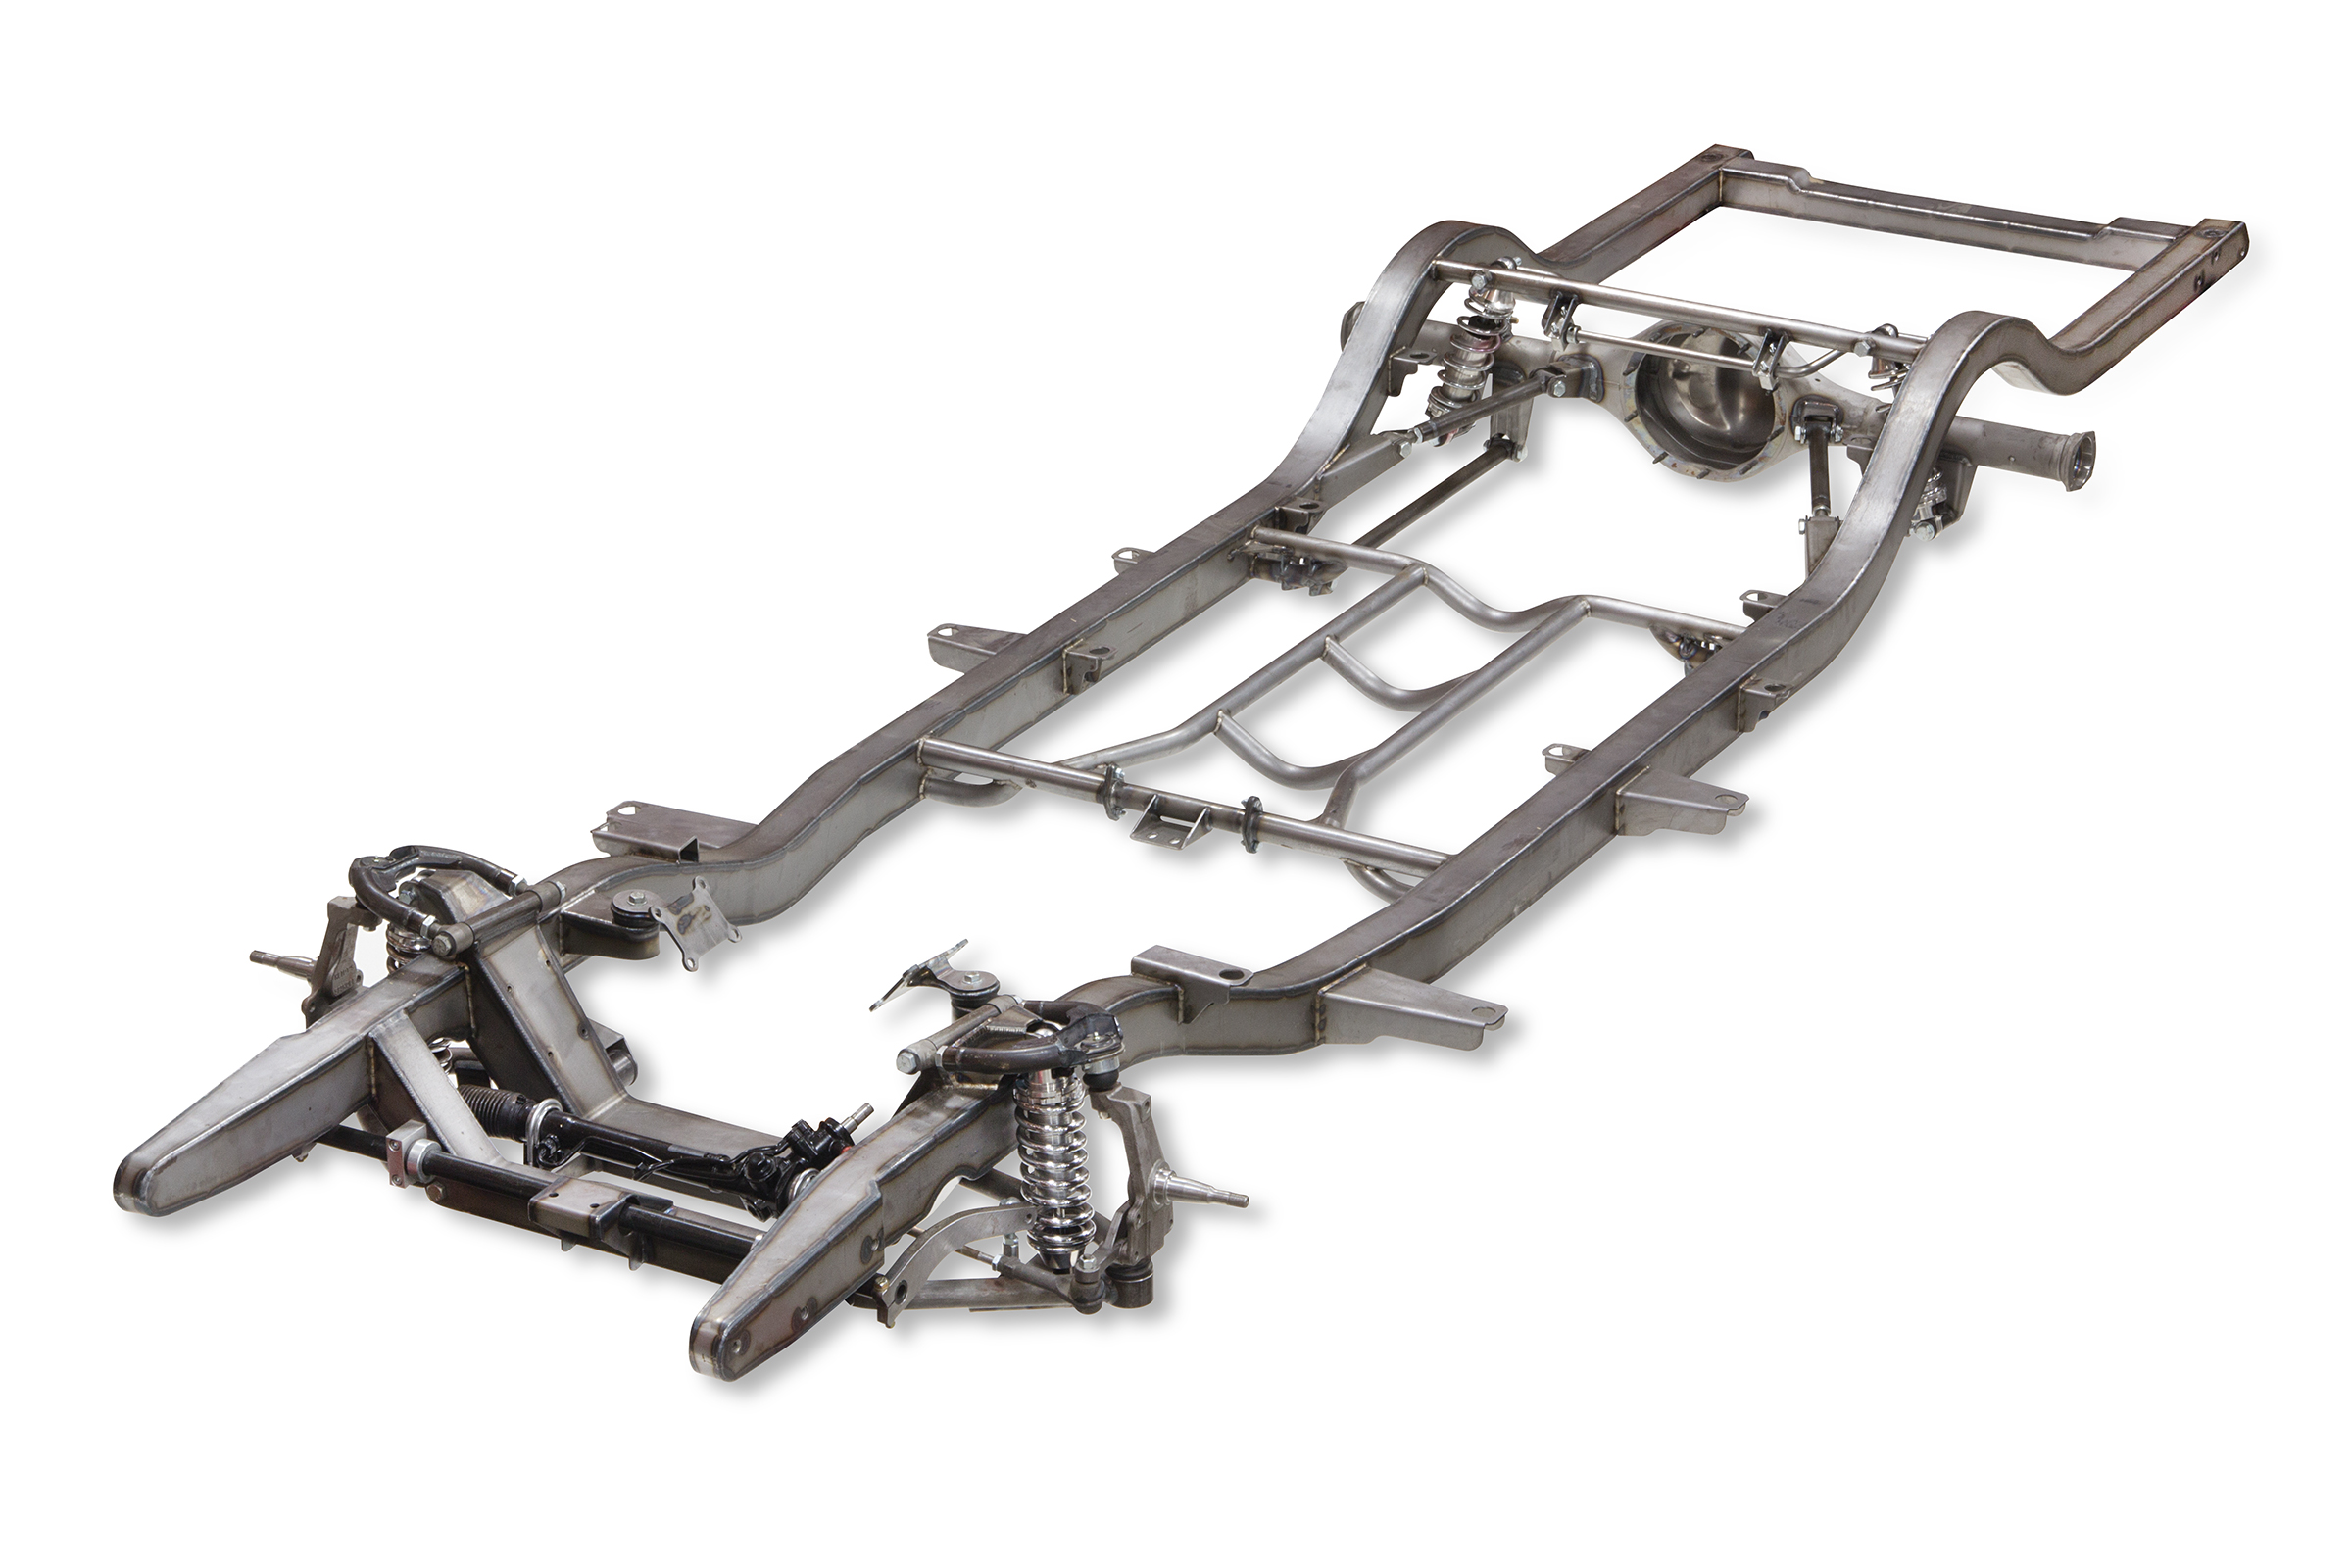 Tri 5 Chevy PRO-G IFS, PRO-G IRS Complete Frame - HEIDTS